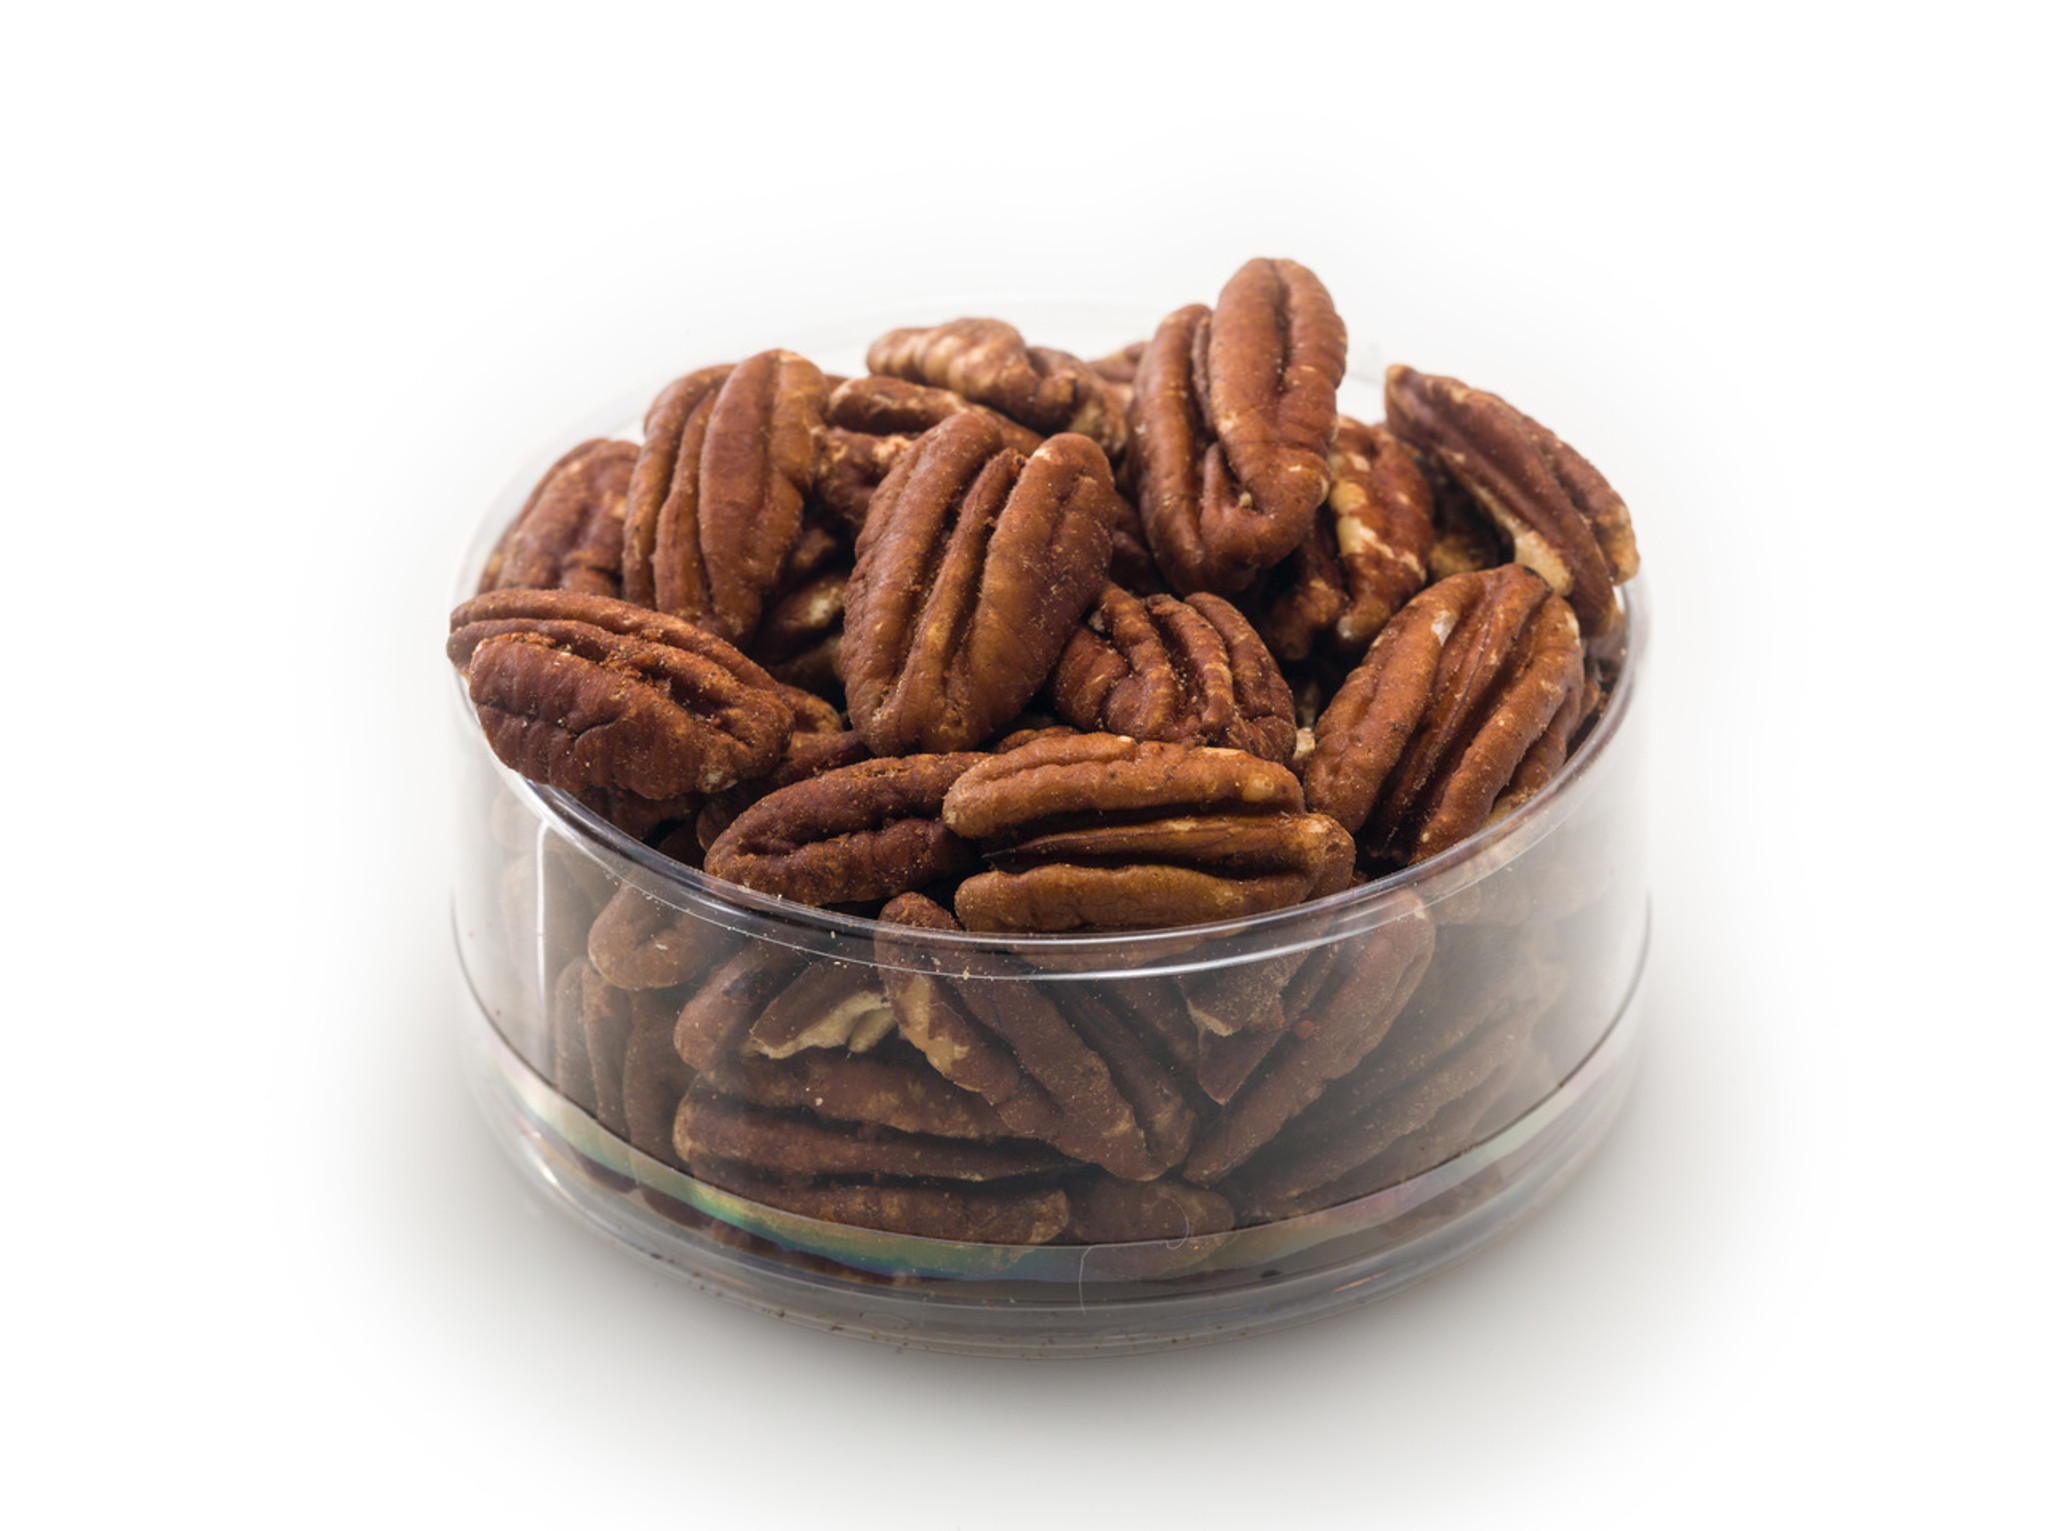 Mesquite BBQ Pecans Fresh Dry-Roasted Daily - Sold in bulk